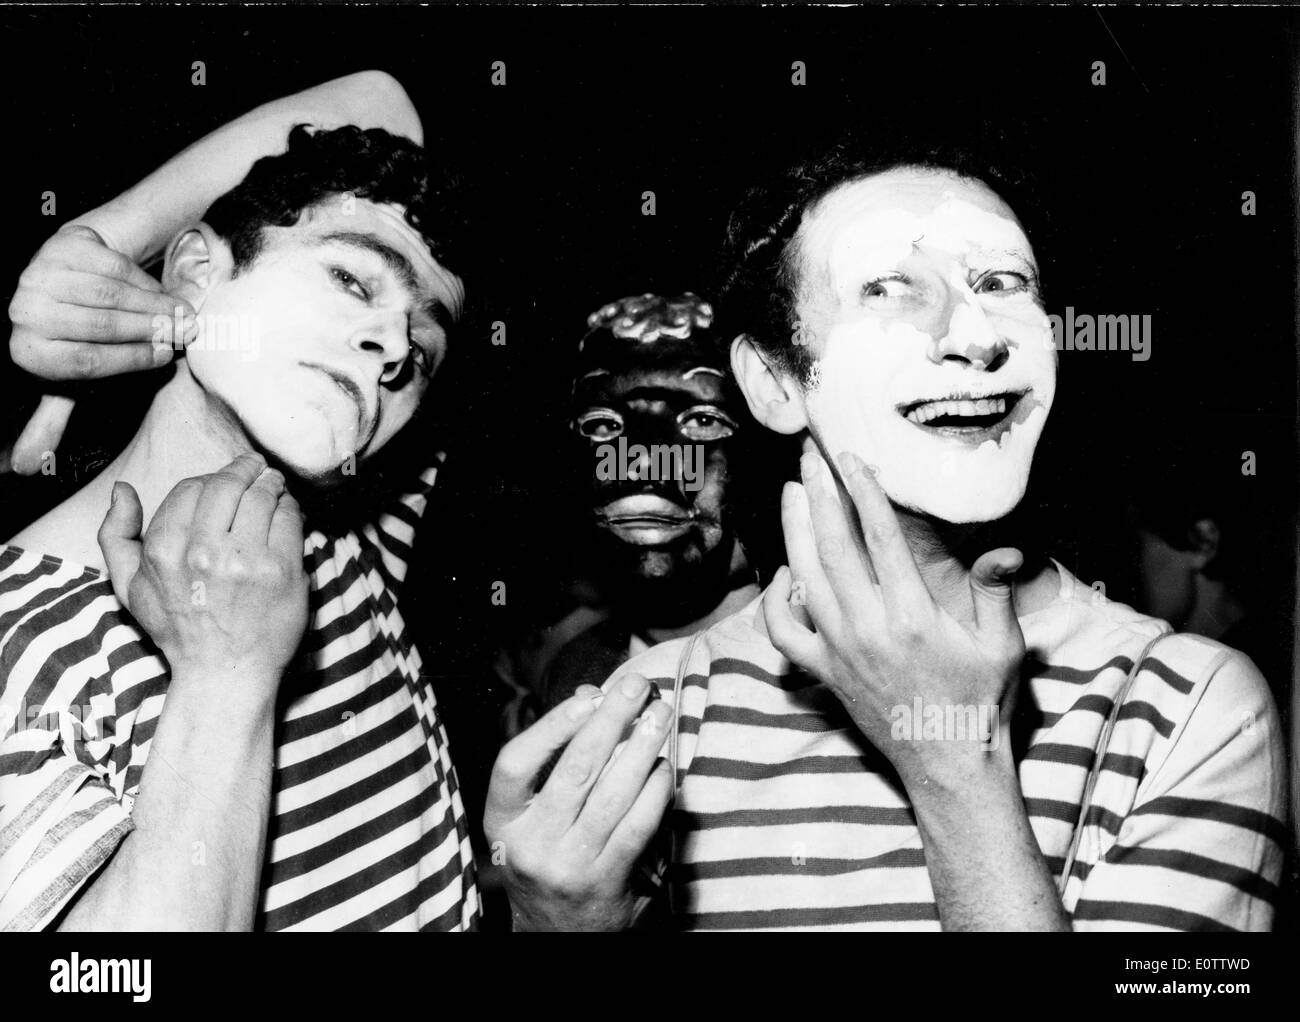 French mime Marcel Marceau preparing for a show with other mimes - Stock Image